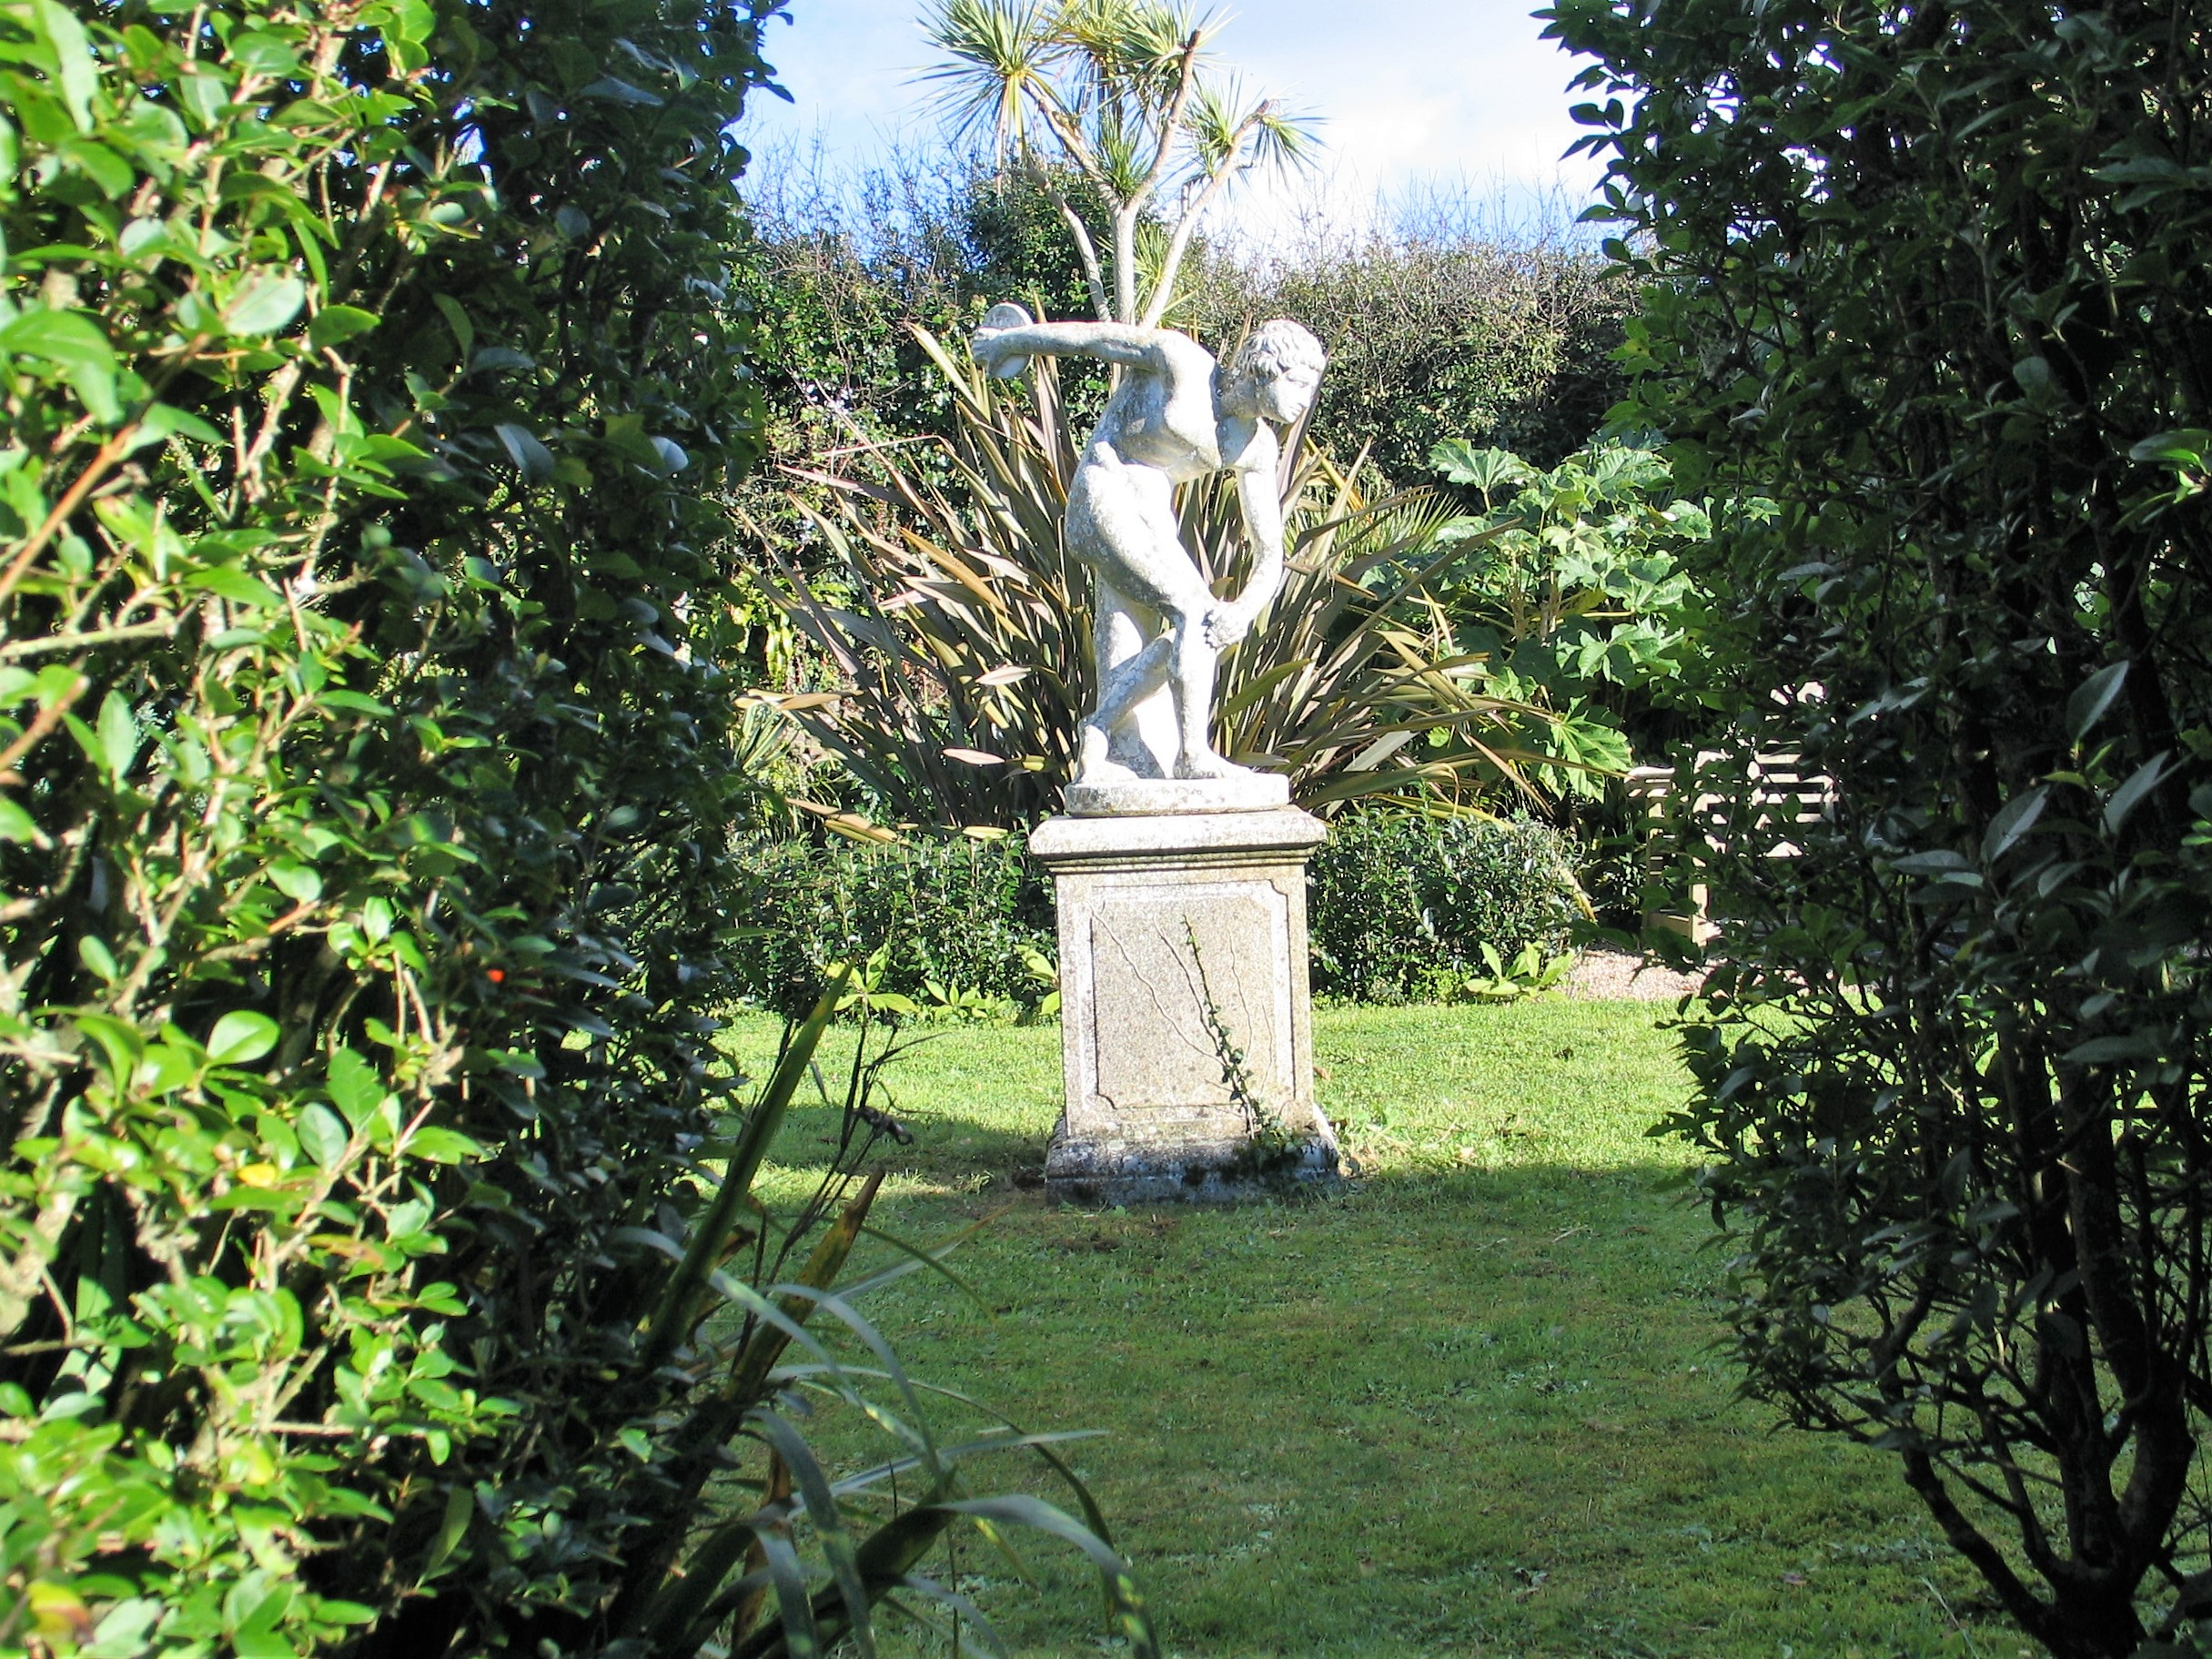 Garden opening framing a statue of a Discus thrower